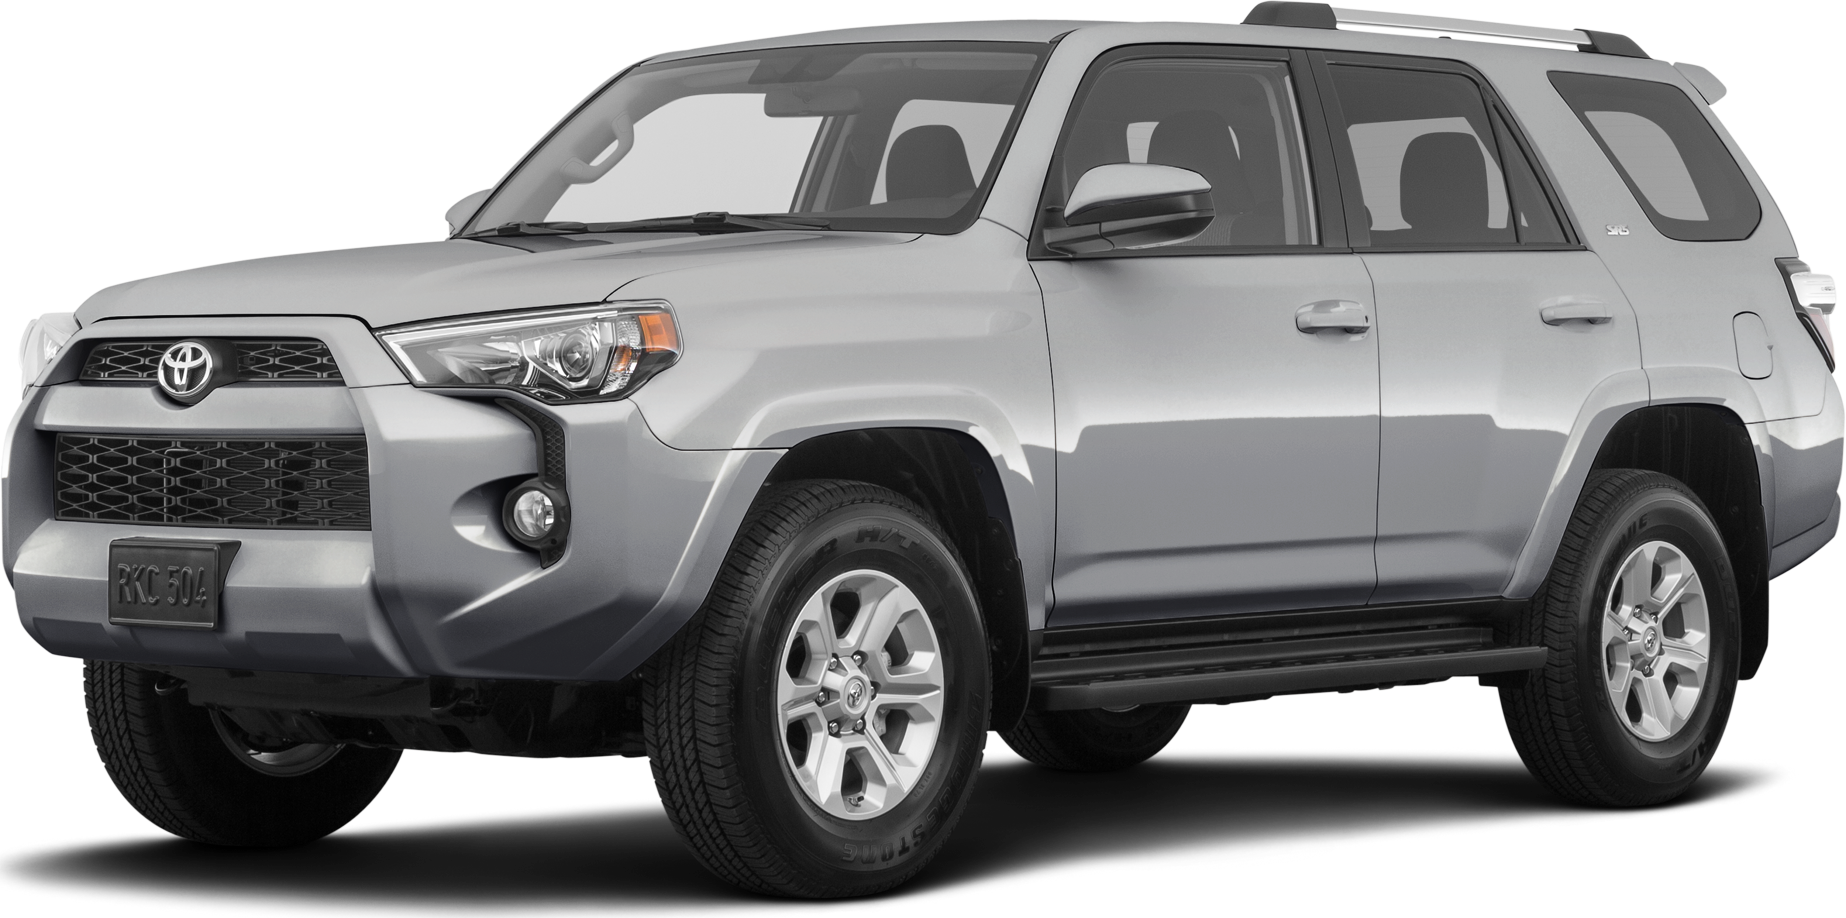 2019 Toyota 4runner Values Cars For Sale Kelley Blue Book